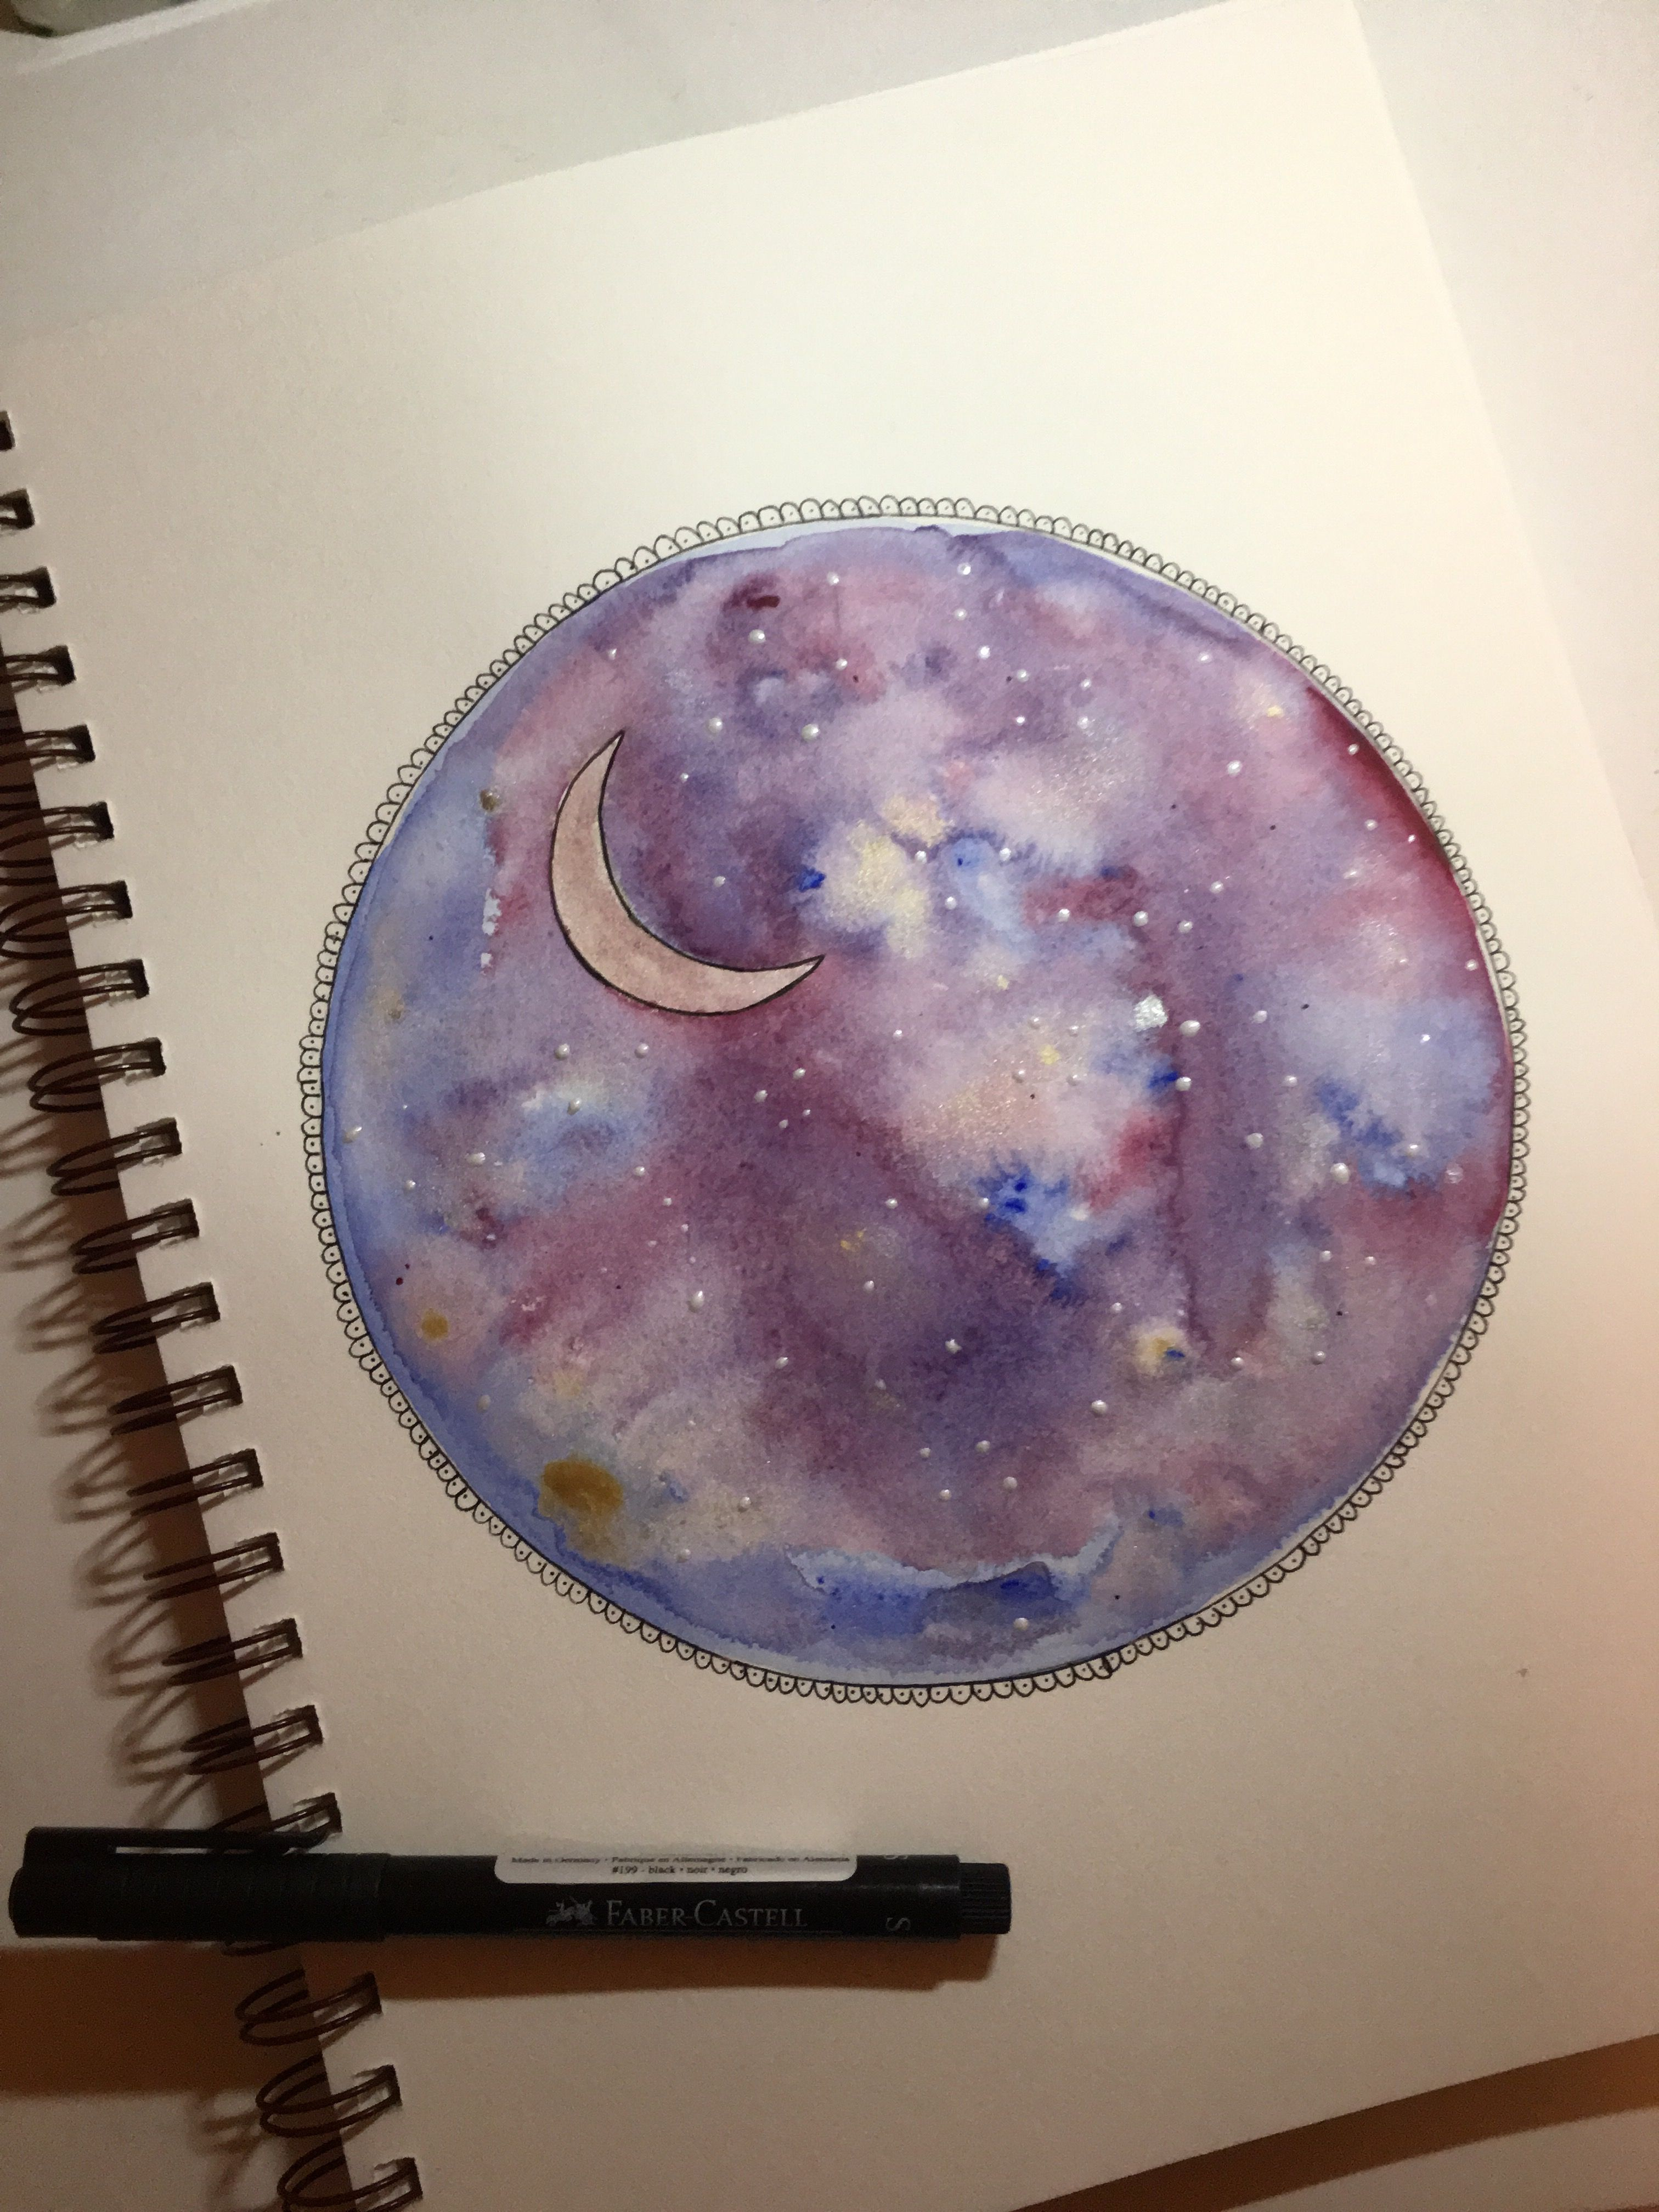 To make this painting, I used watercolor and ink. I started out by tracing a circle, then, using a mixture of both regular and metallic watercolors, I painted it to look like a galaxy. Once the painting was finished, I used black ink to outline it and add more details.